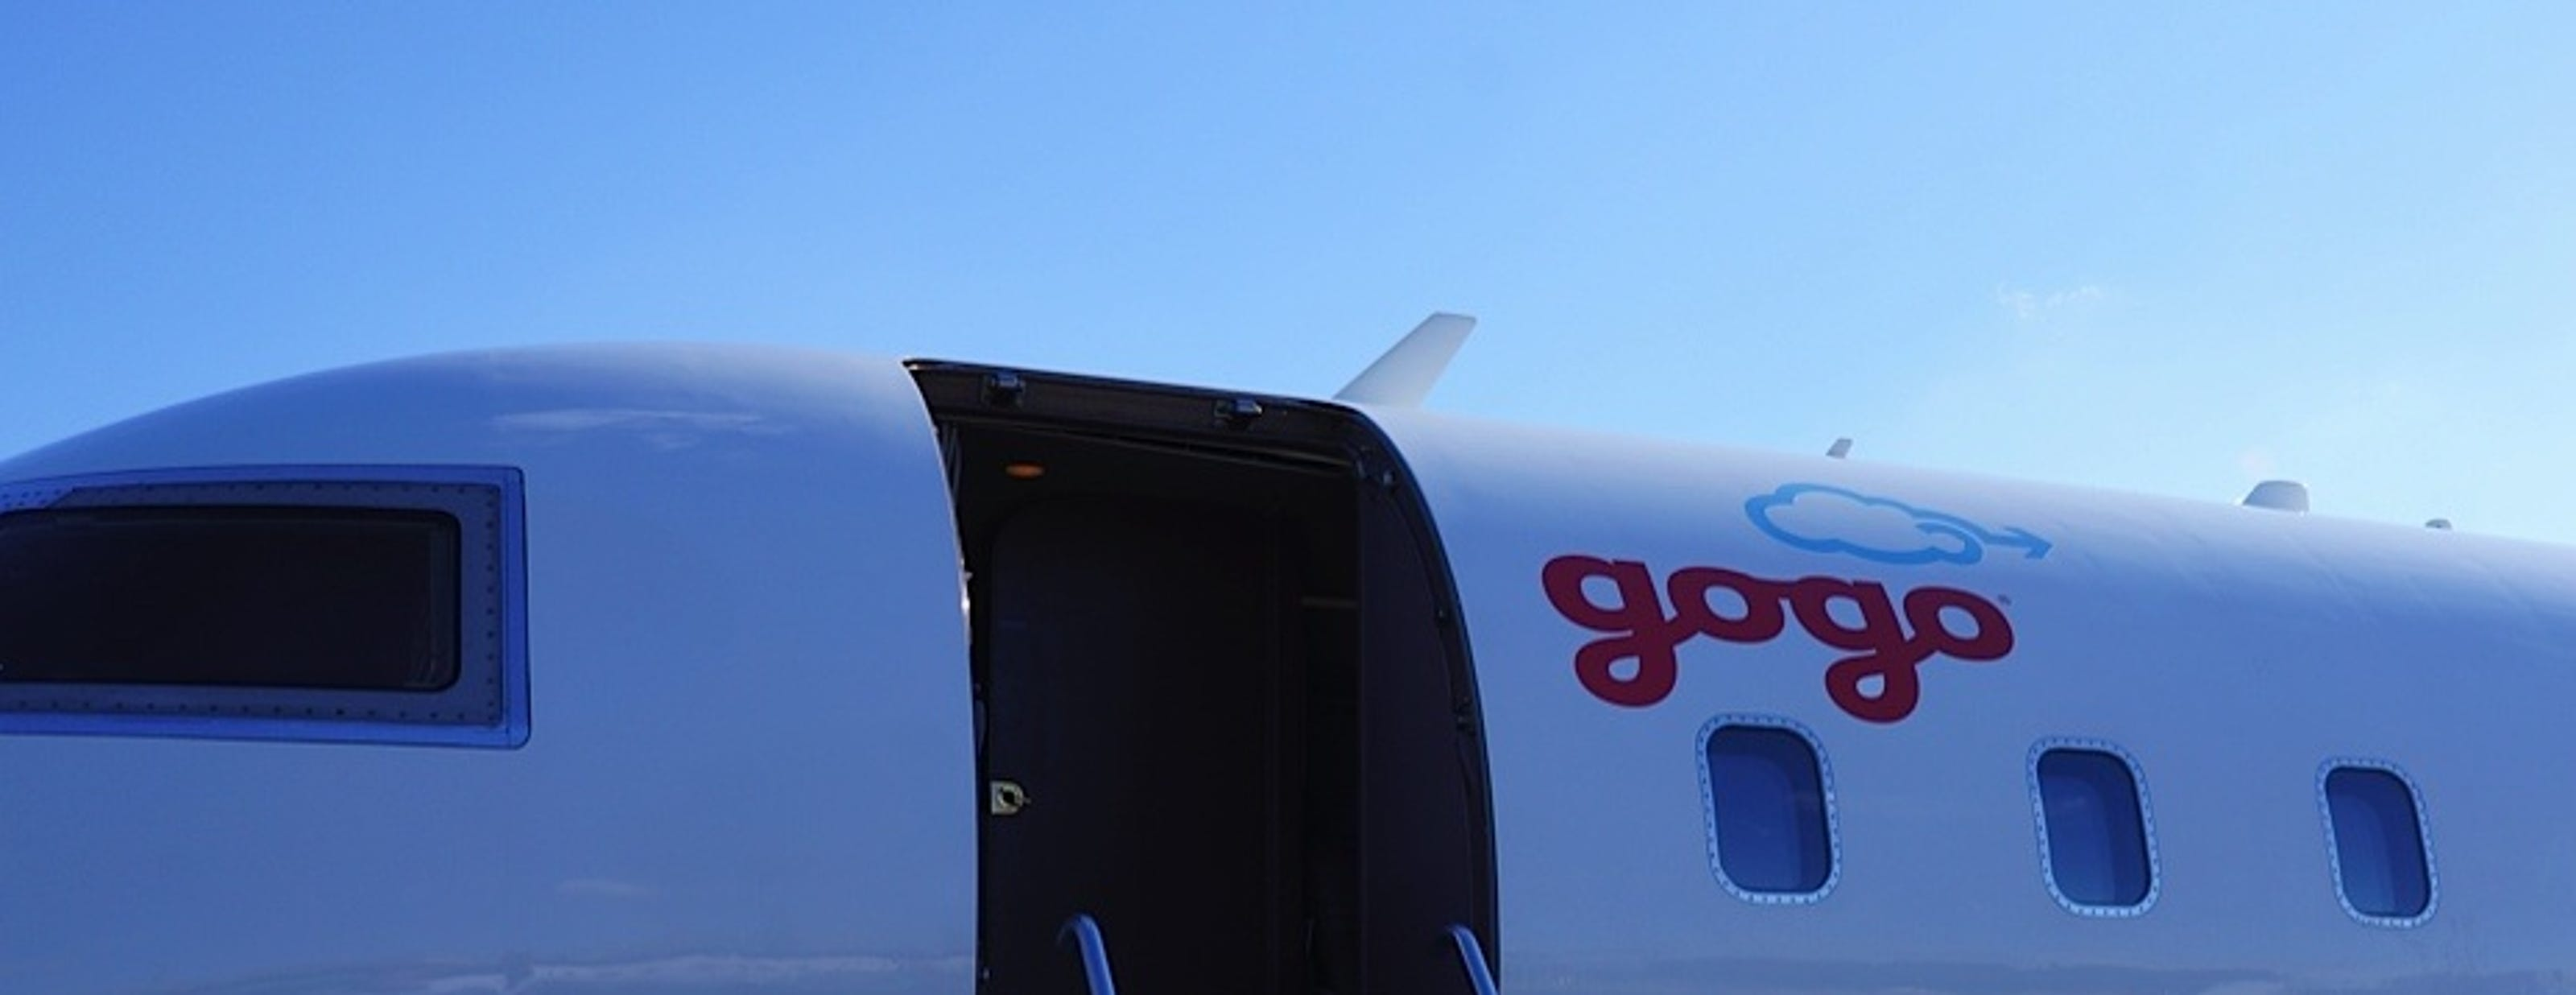 T Mobile Inflight Wifi Use Google Apps Over Gogo Wi Fi For Free